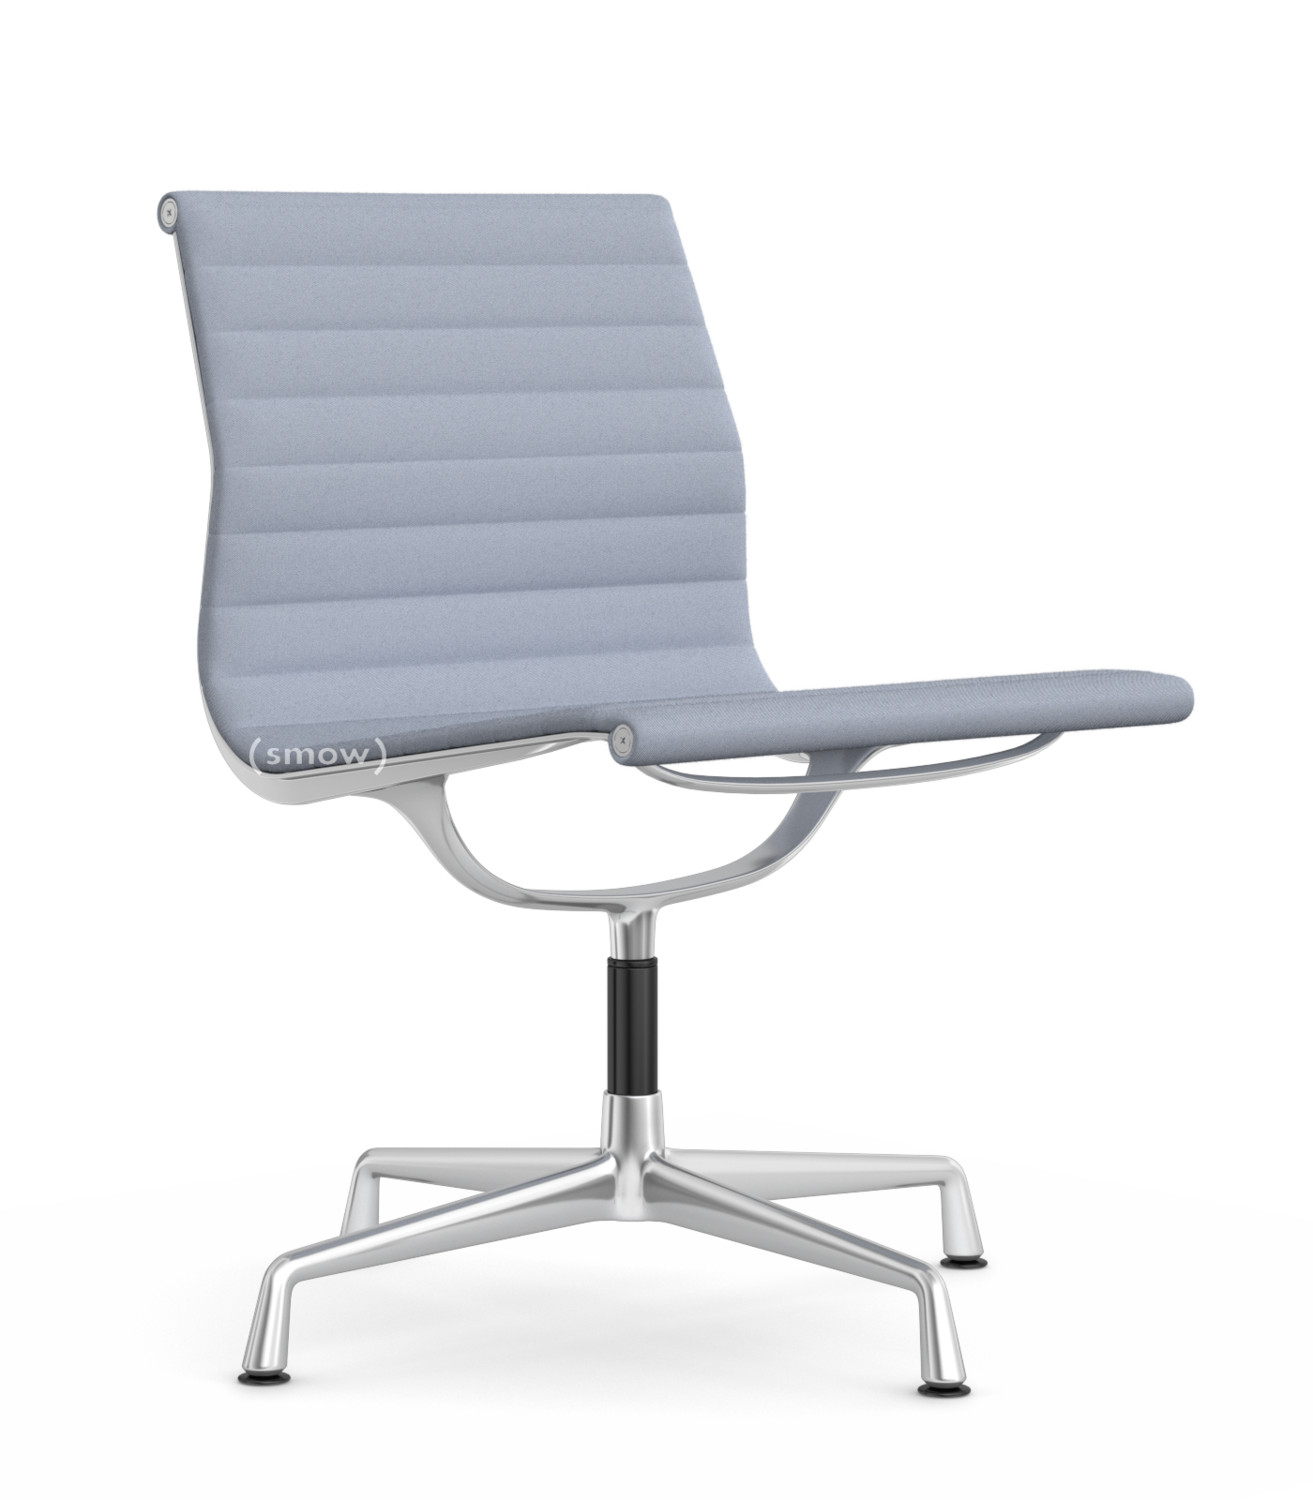 Vitra aluminium group ea 105 by charles ray eames 1958 for Eames alu chair nachbau